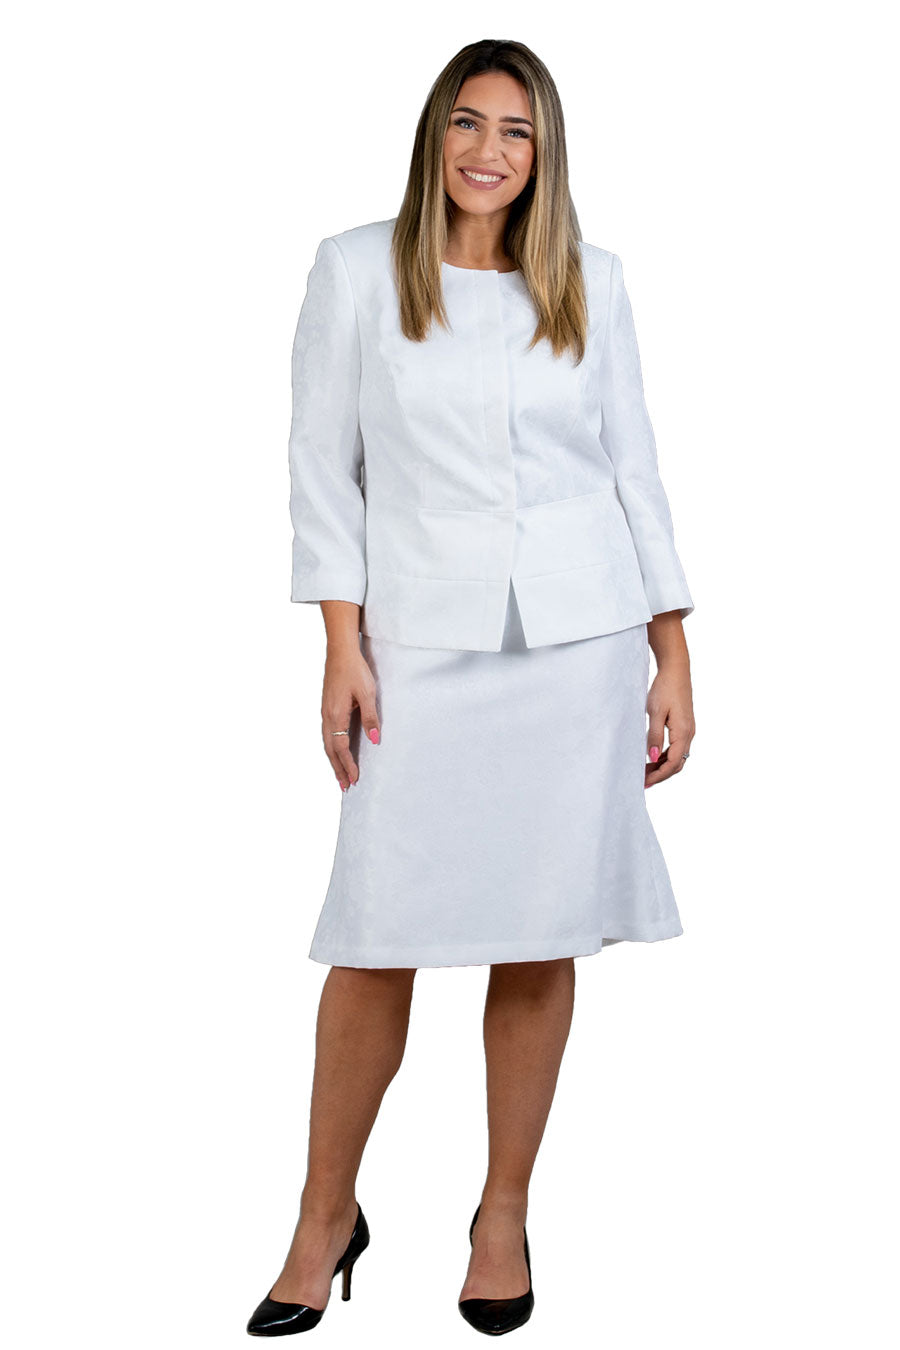 John Meyer Skirt Suit 879H296 - Church Suits For Less